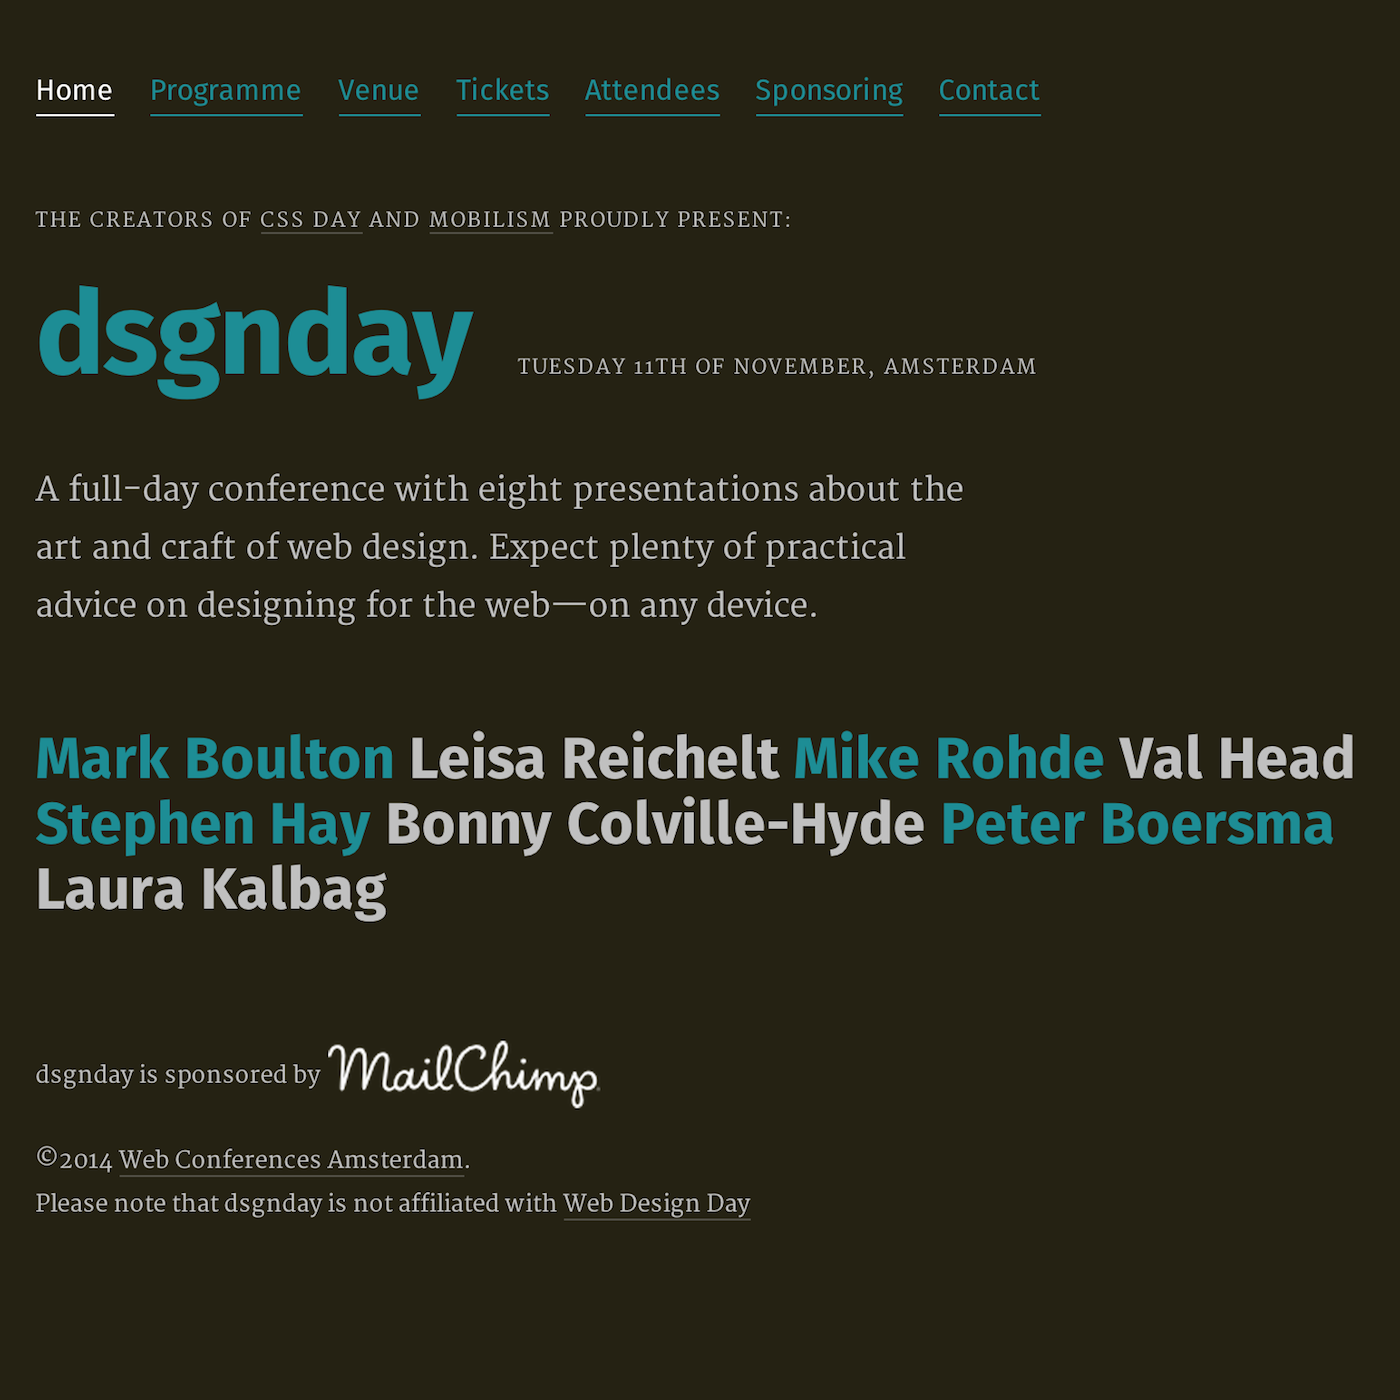 dsgnday sessions